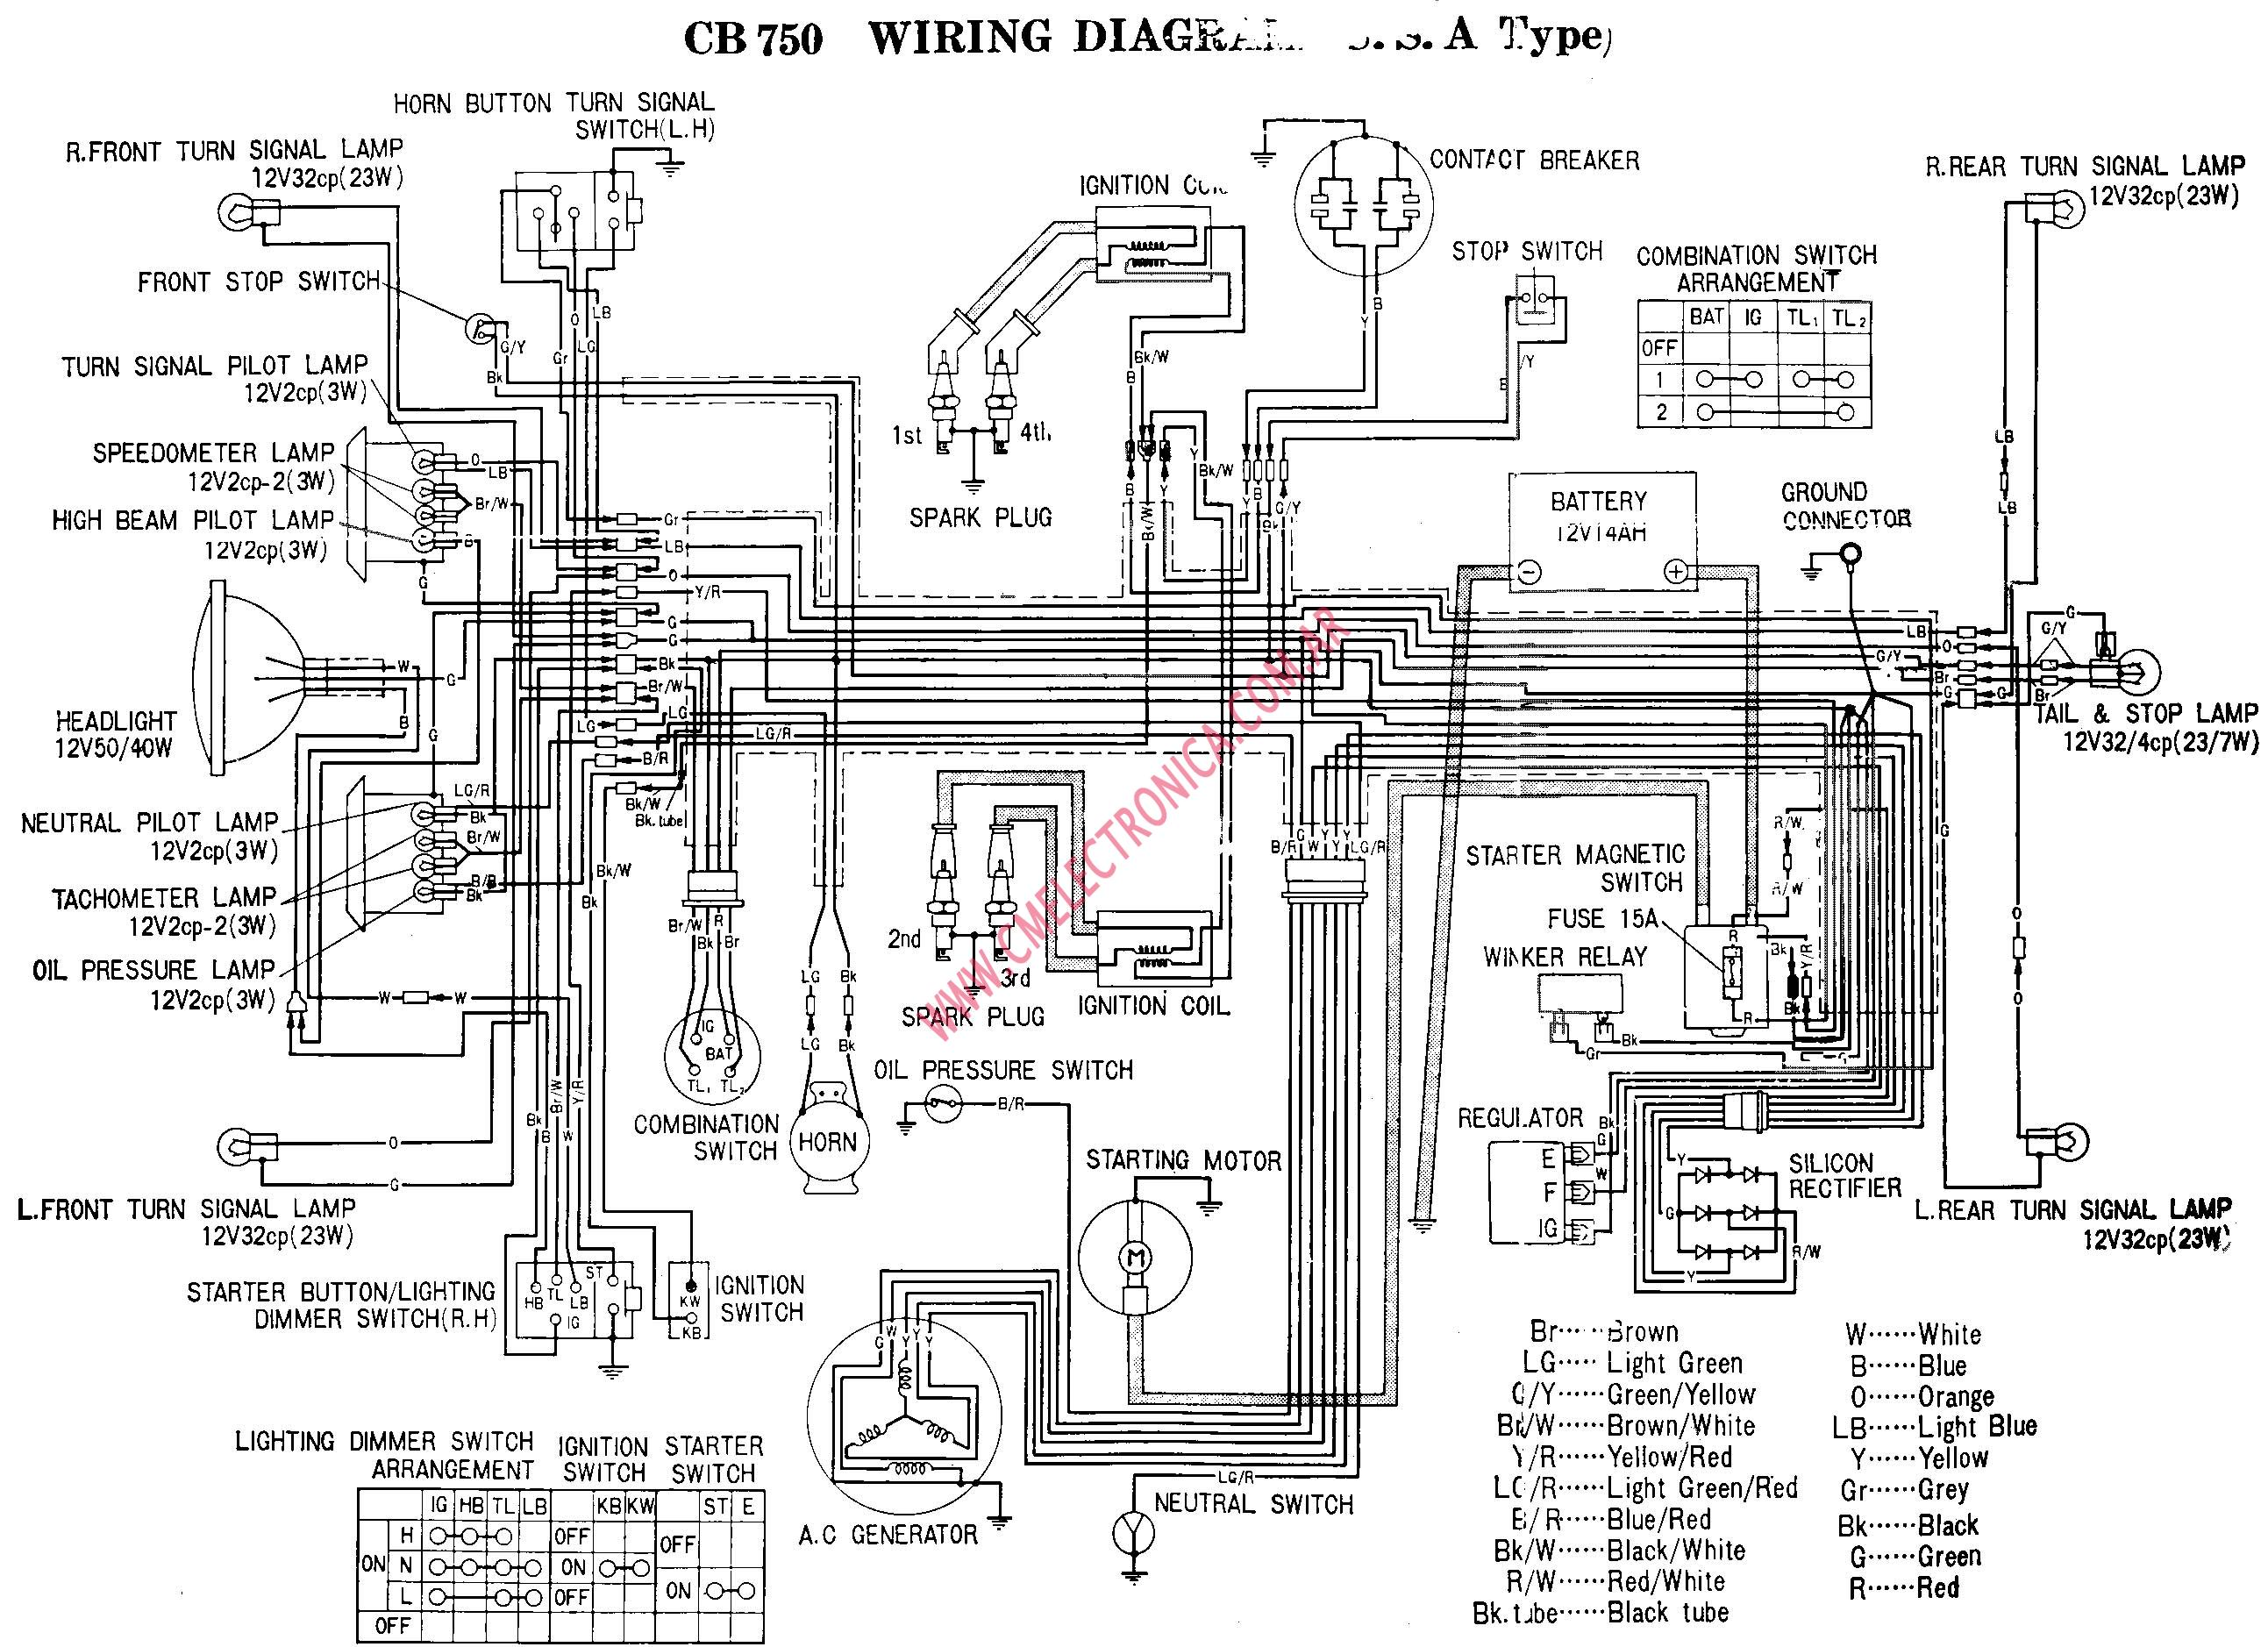 Diagram Honda Shadow 750 Wiring Diagram Full Version Hd Quality Wiring Diagram Rkwiring Osservatoriodelbiellese It